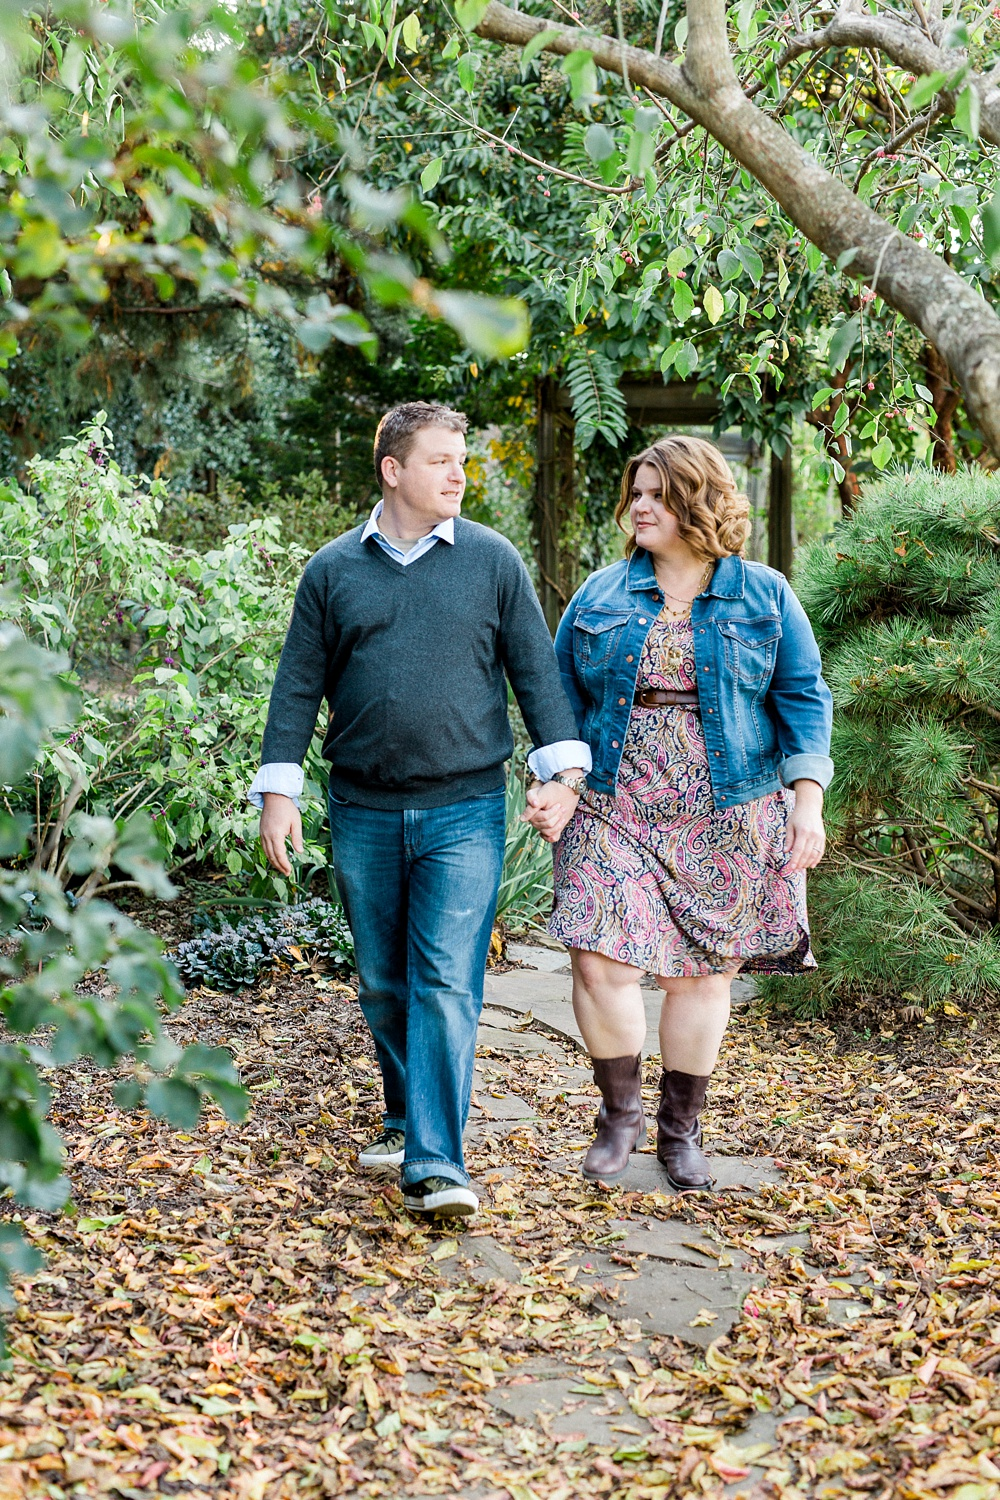 Engagement Session at JC Raulston Arboretum, Raleigh NC